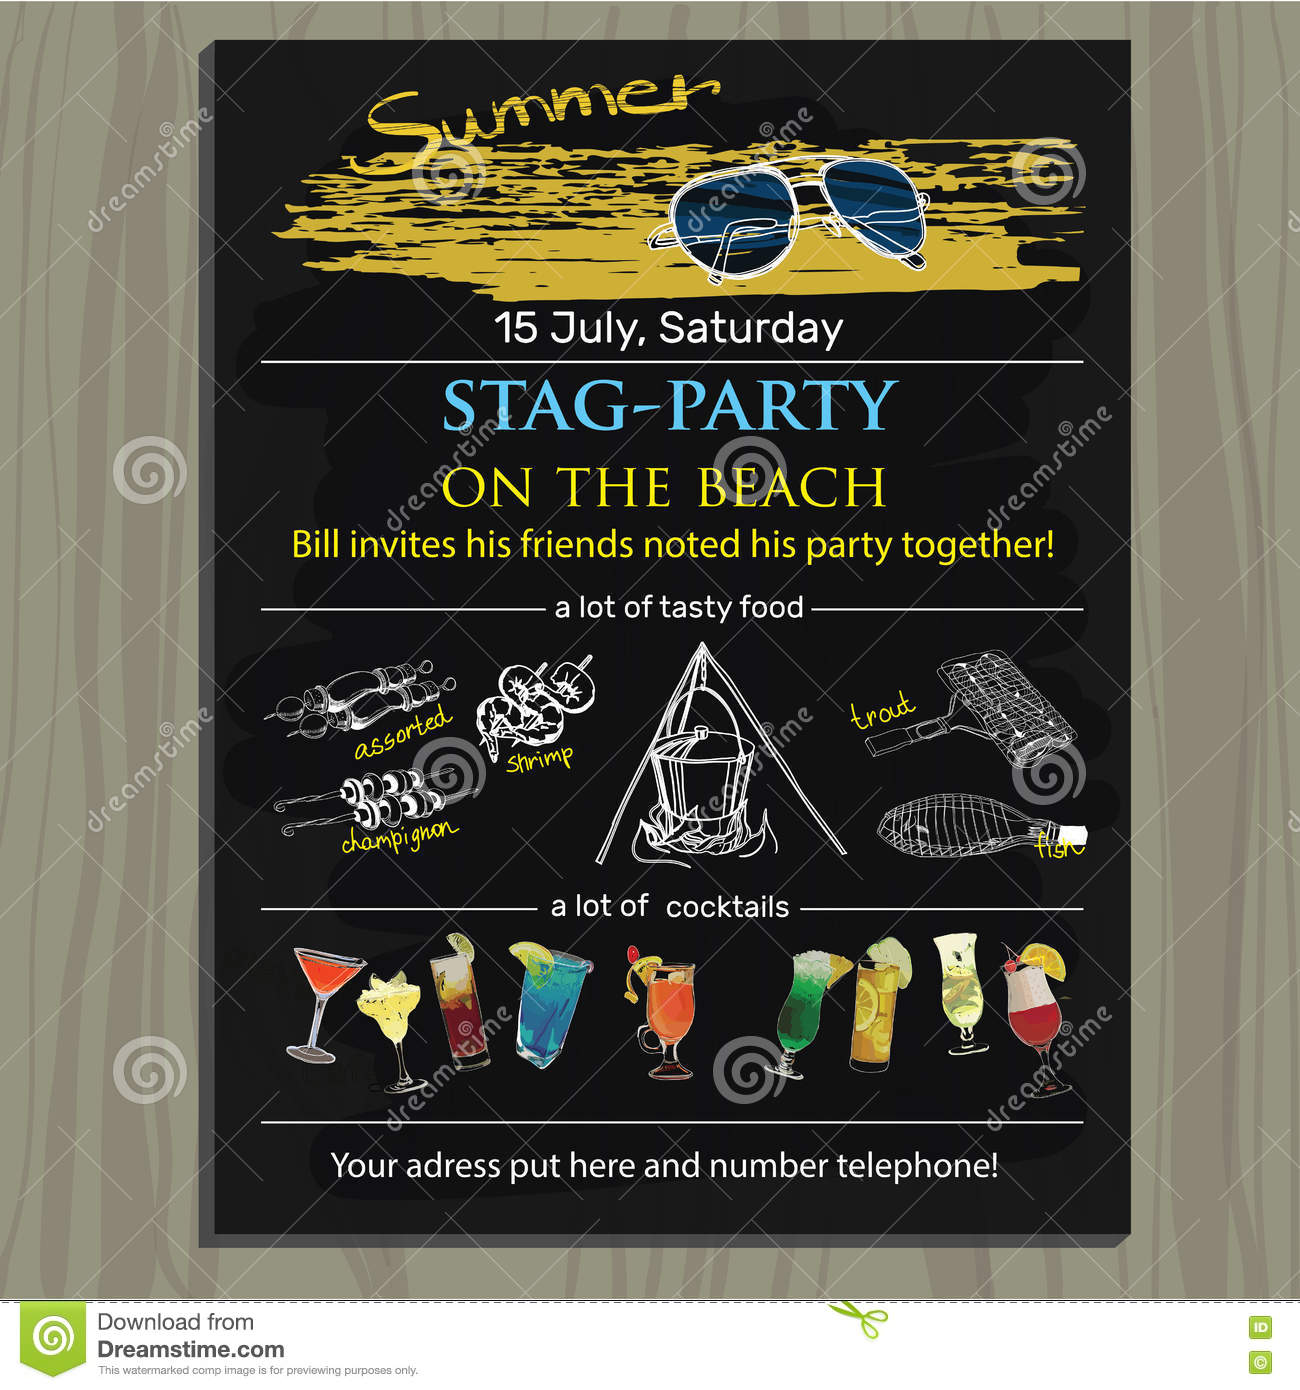 Stagparty Invite On The Beach Holiday Vacation Invitation C – Stag Party Invites